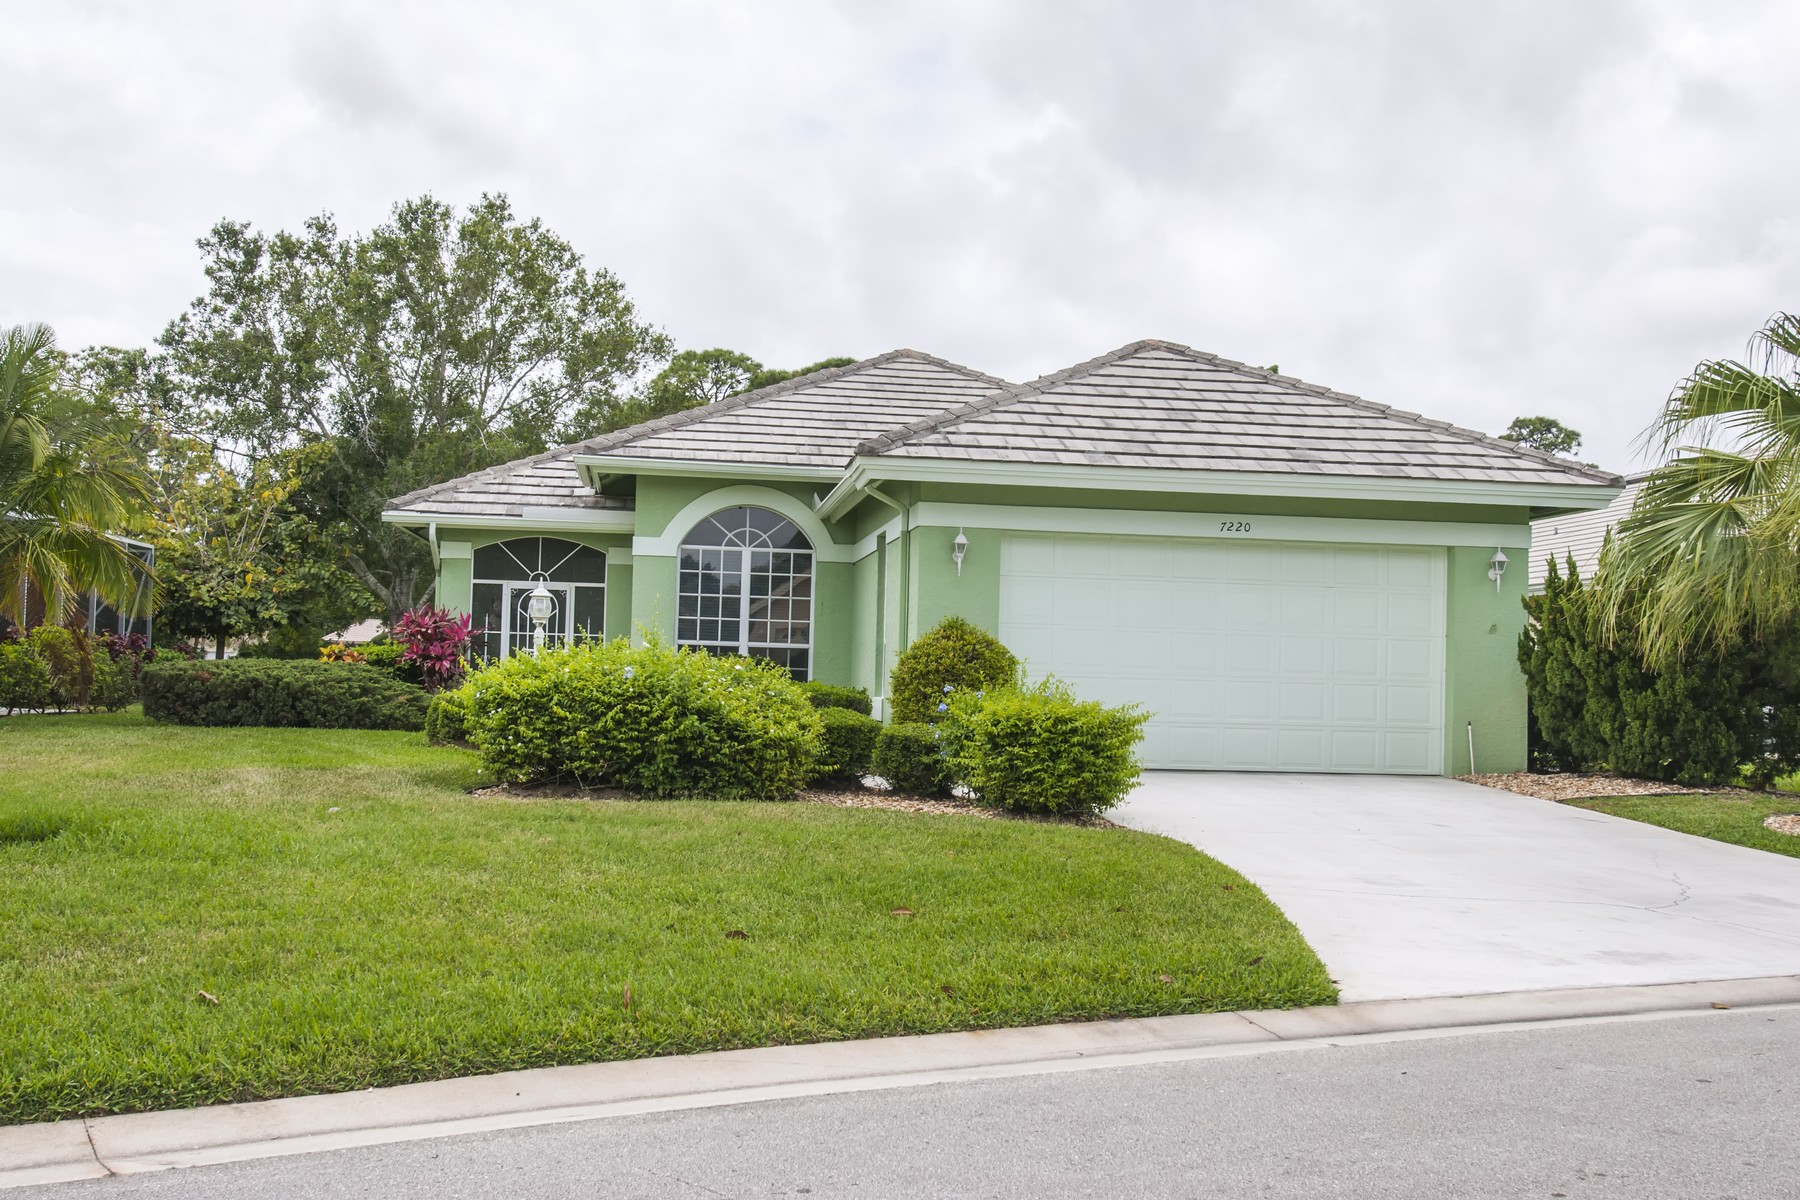 단독 가정 주택 용 매매 에 Private Setting with Lake and Preserve Views 7220 Marsh Terrace Port St. Lucie, 플로리다, 34986 미국